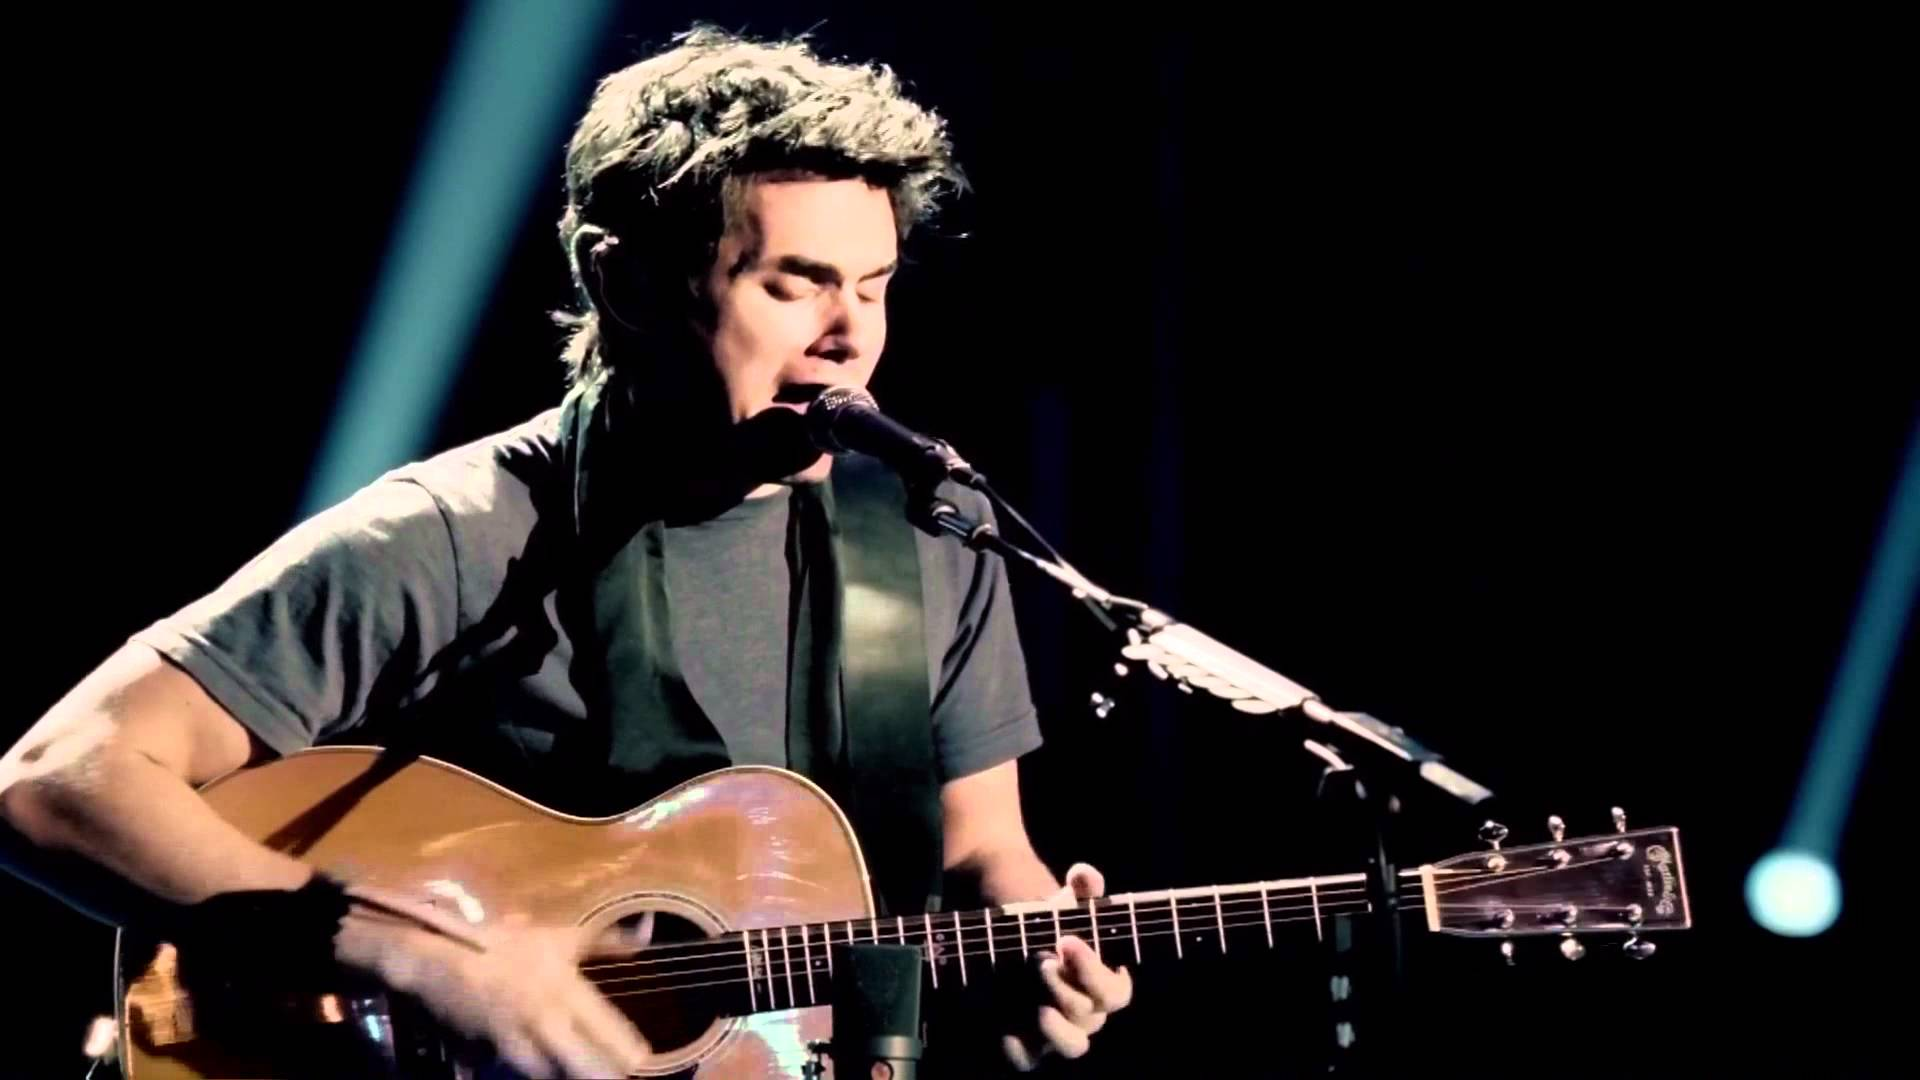 Electric Guitar Wallpaper Hd John Mayer Hd Wallpapers